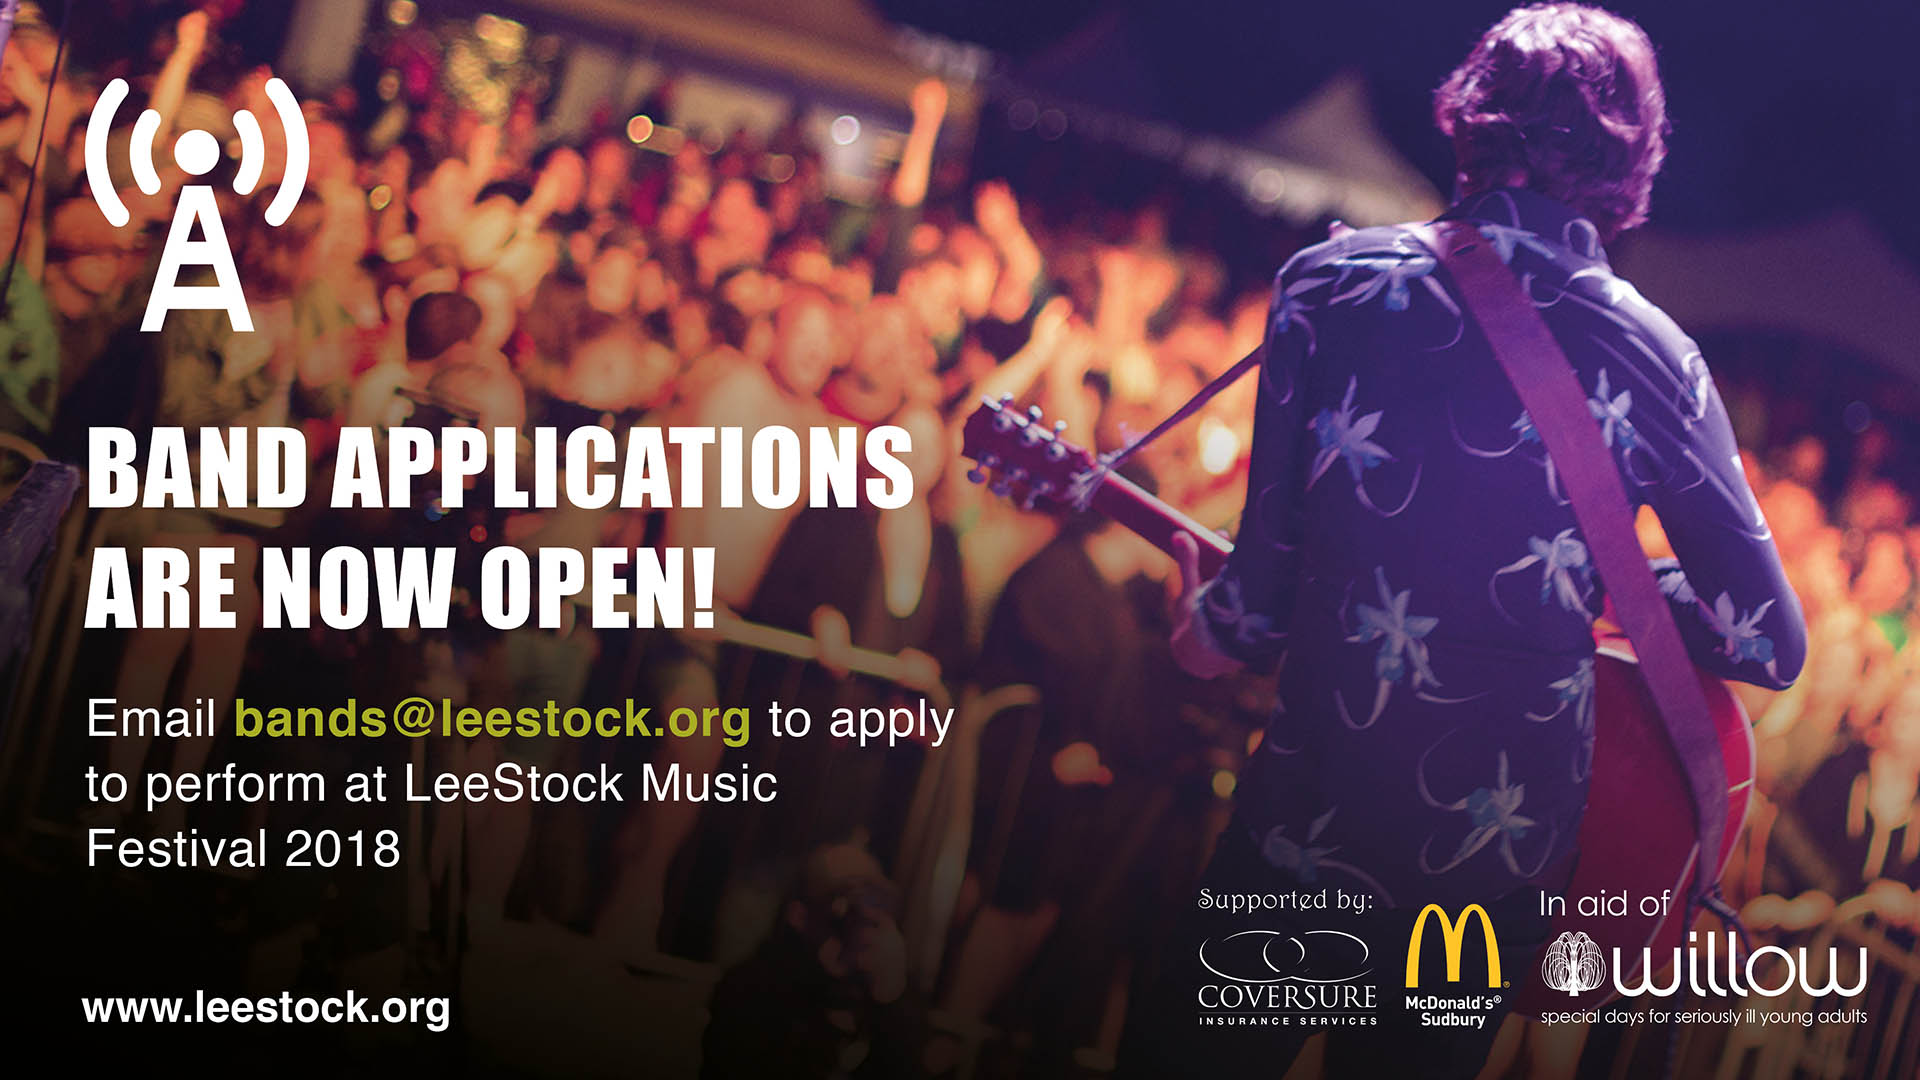 LeeStock Band Applications For 2018